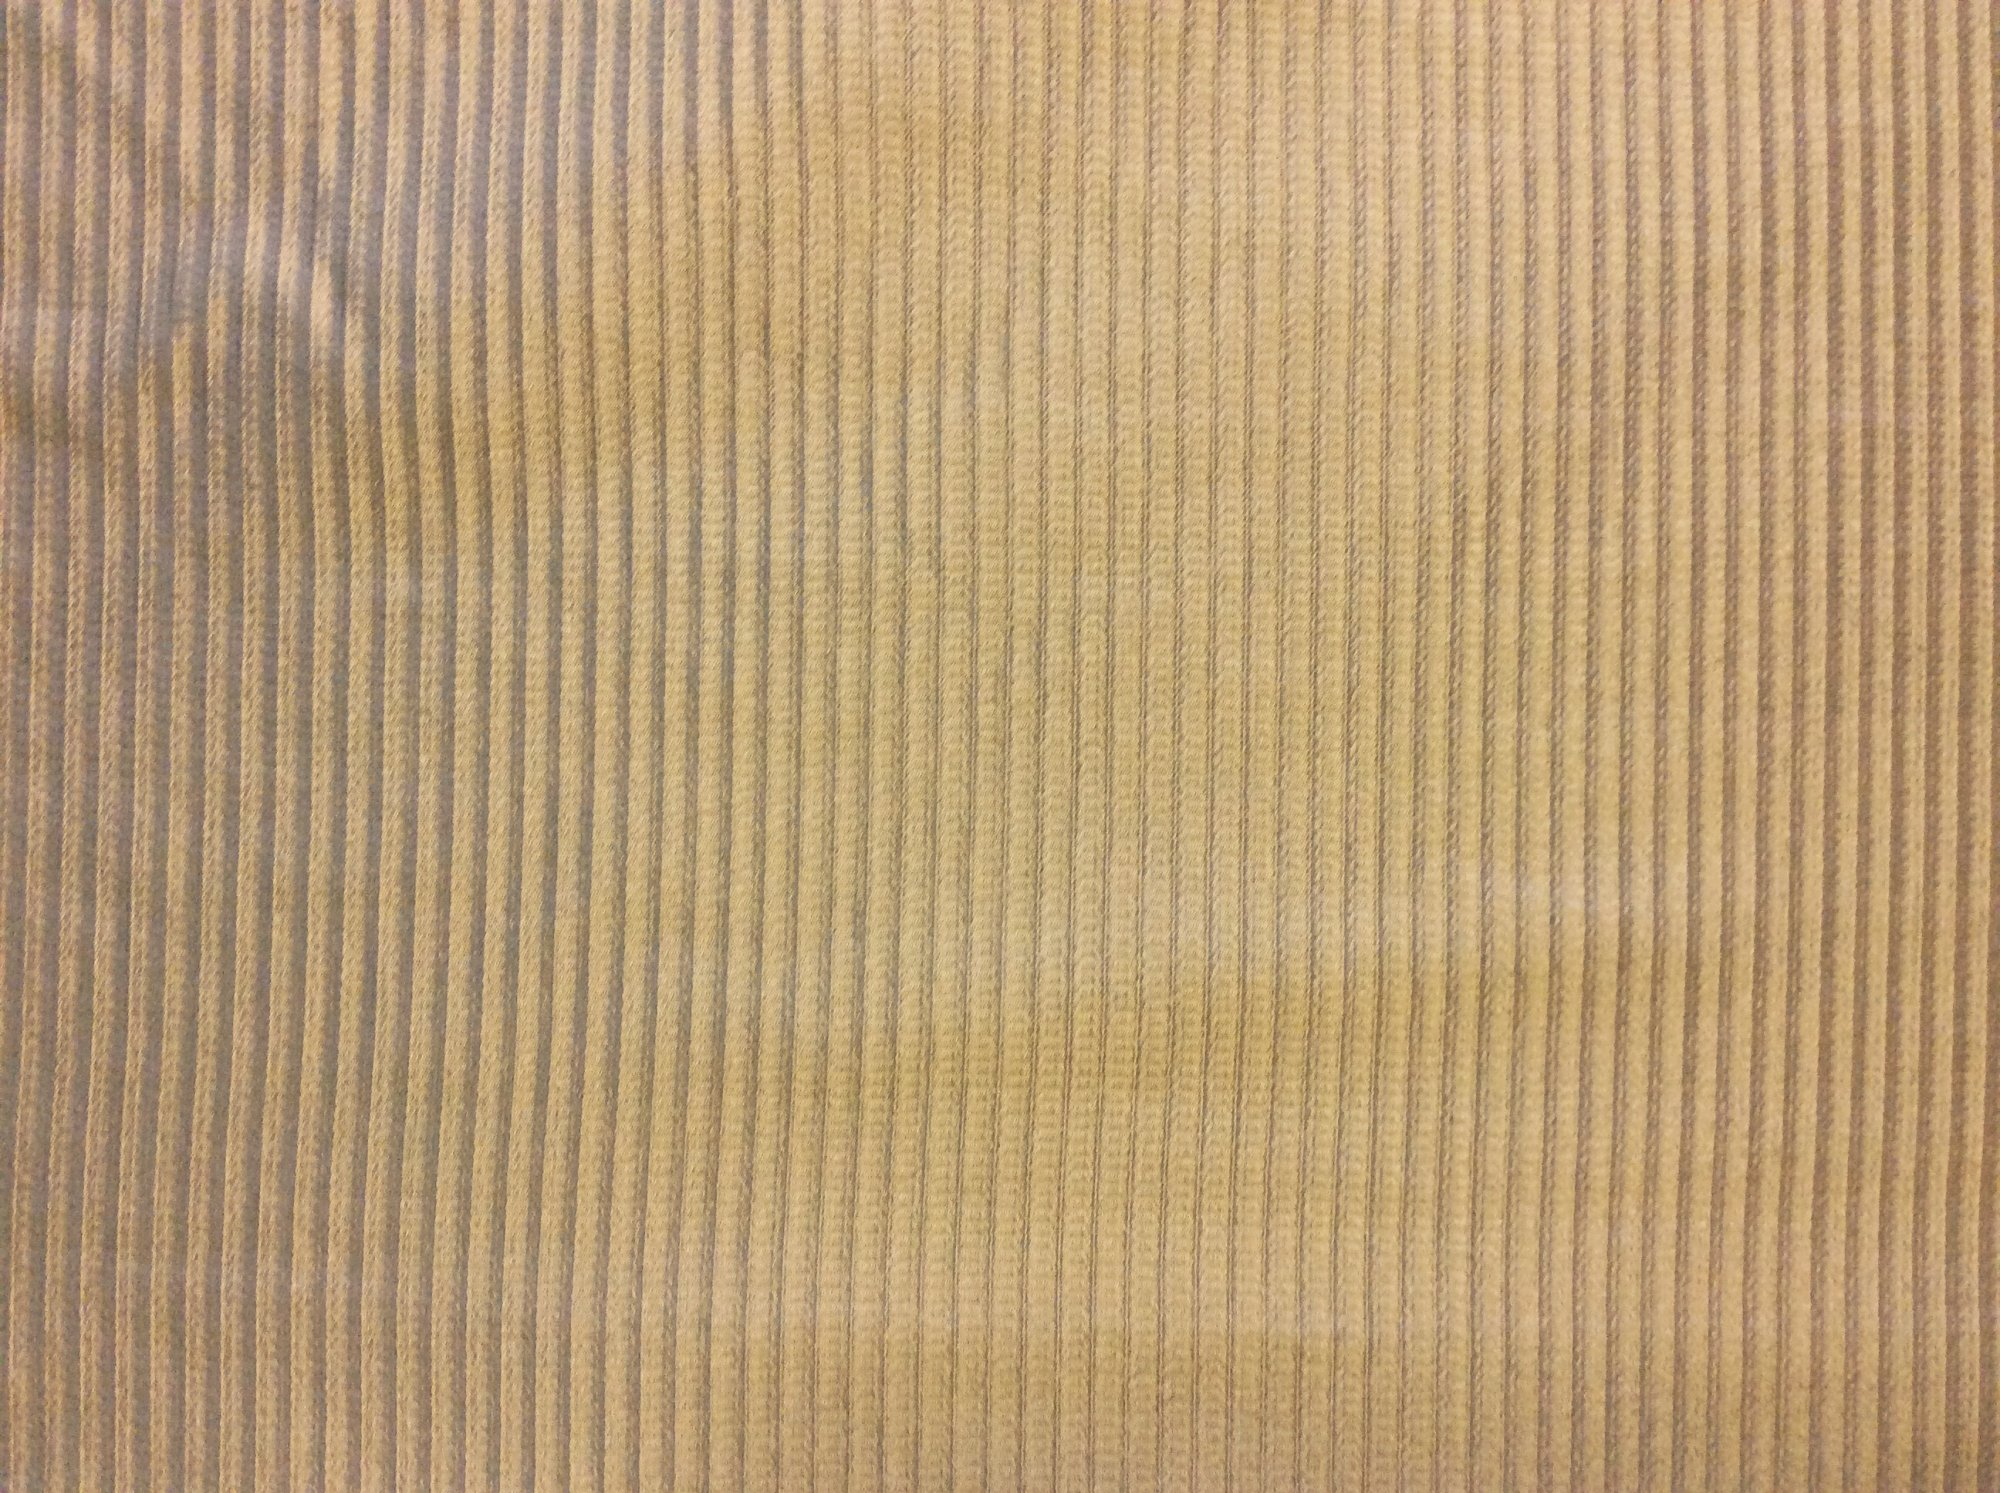 Clarence House Ribbed Stripe Gold Tone Heavy Silk Home Decor Fabric CLA171